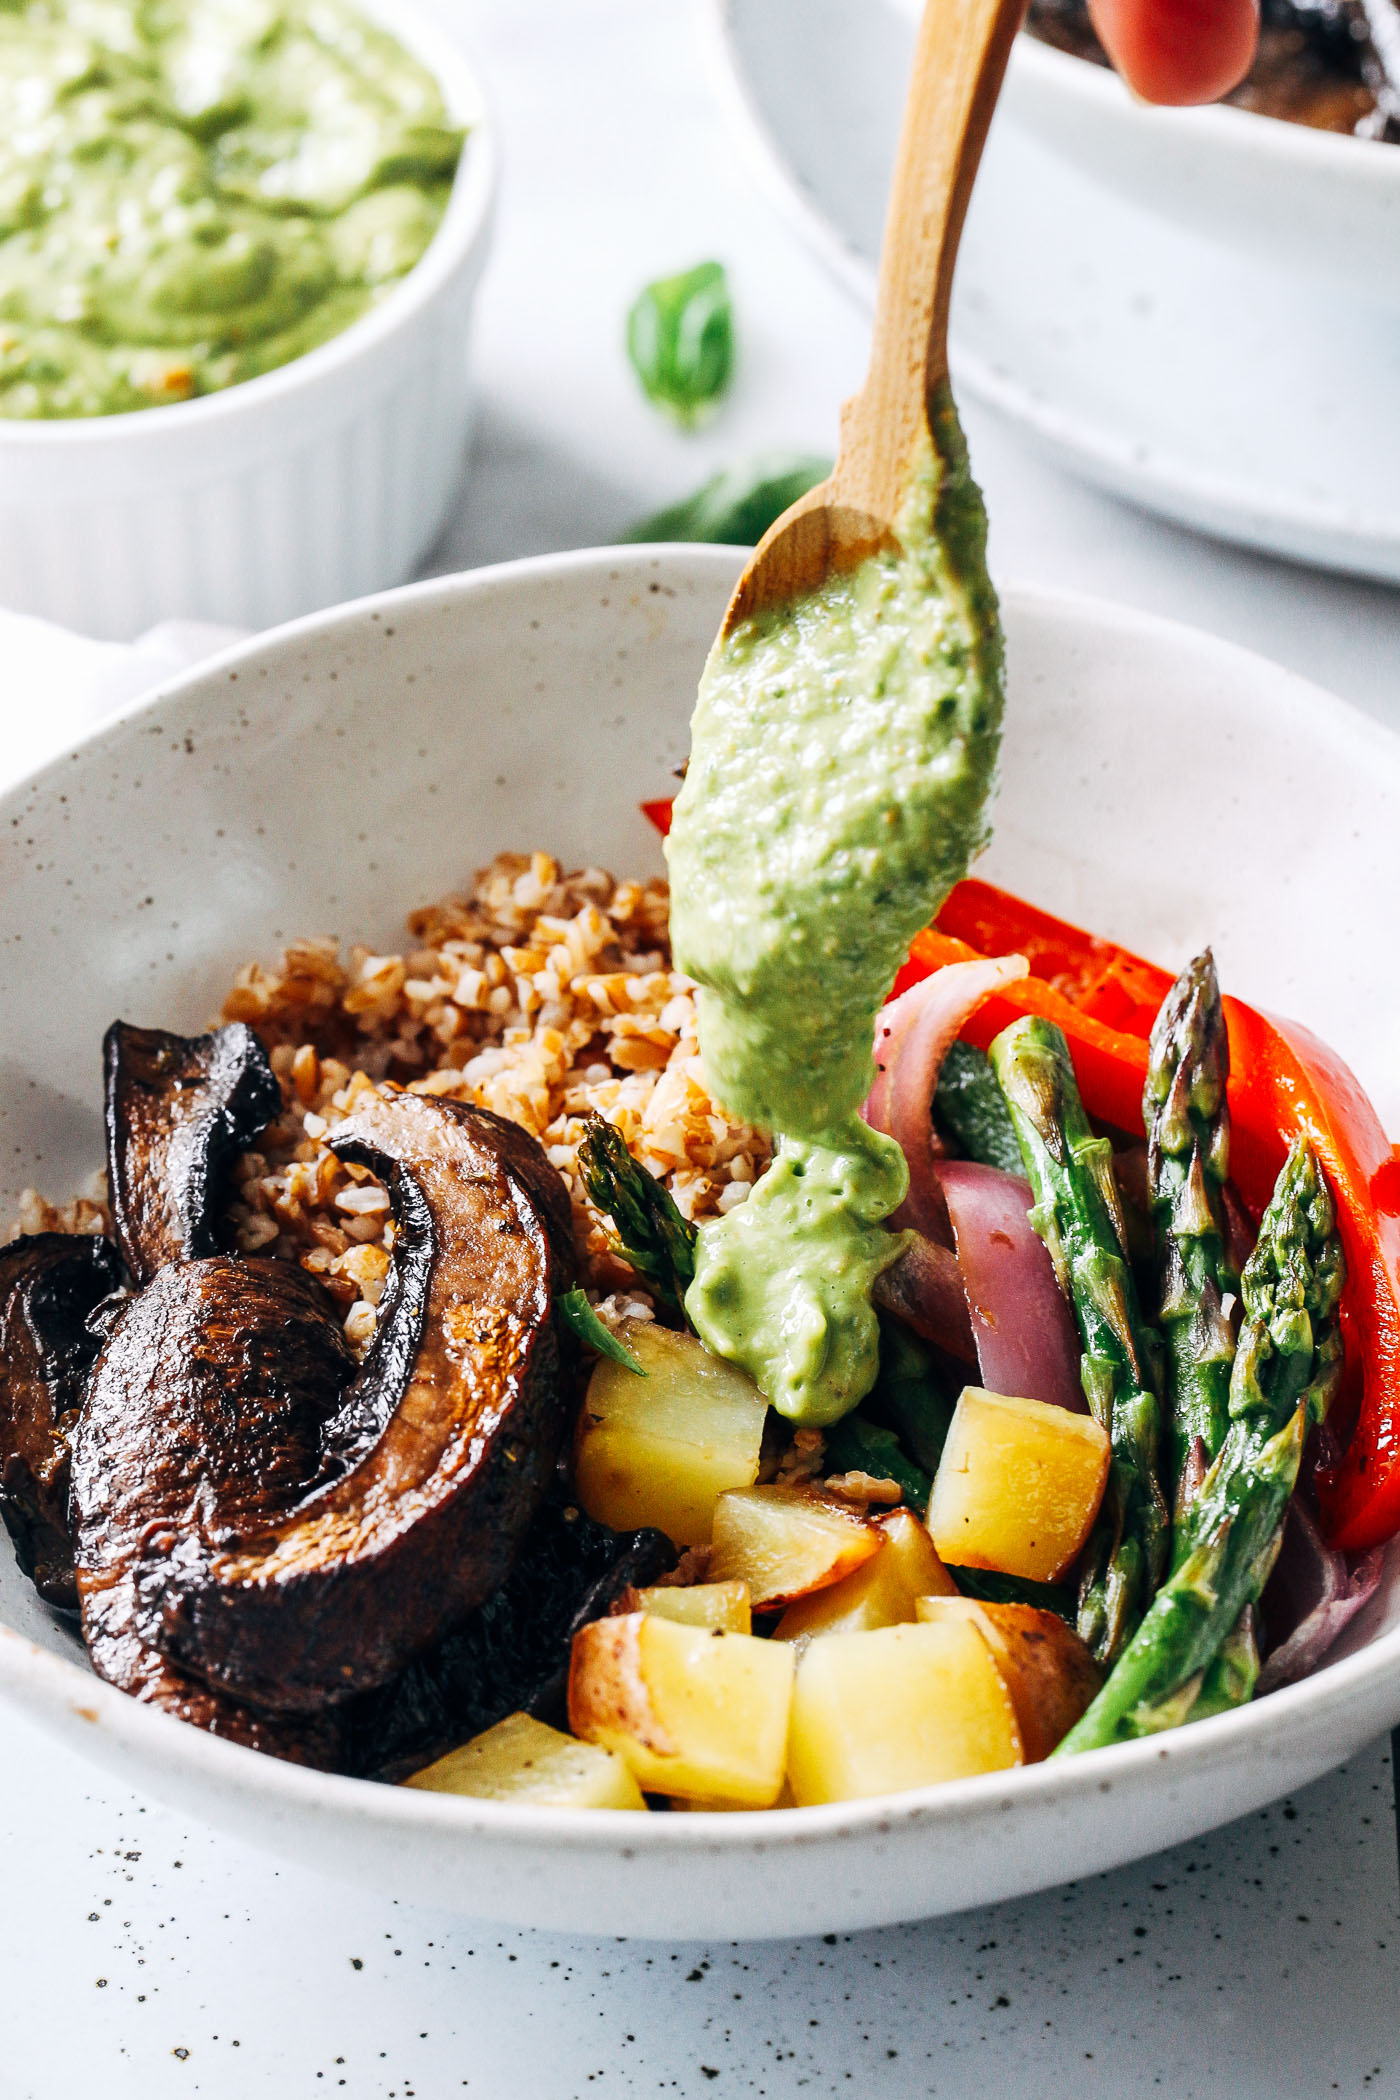 Grilled Portobello mushrooms, vegetables (buttered) and avocado